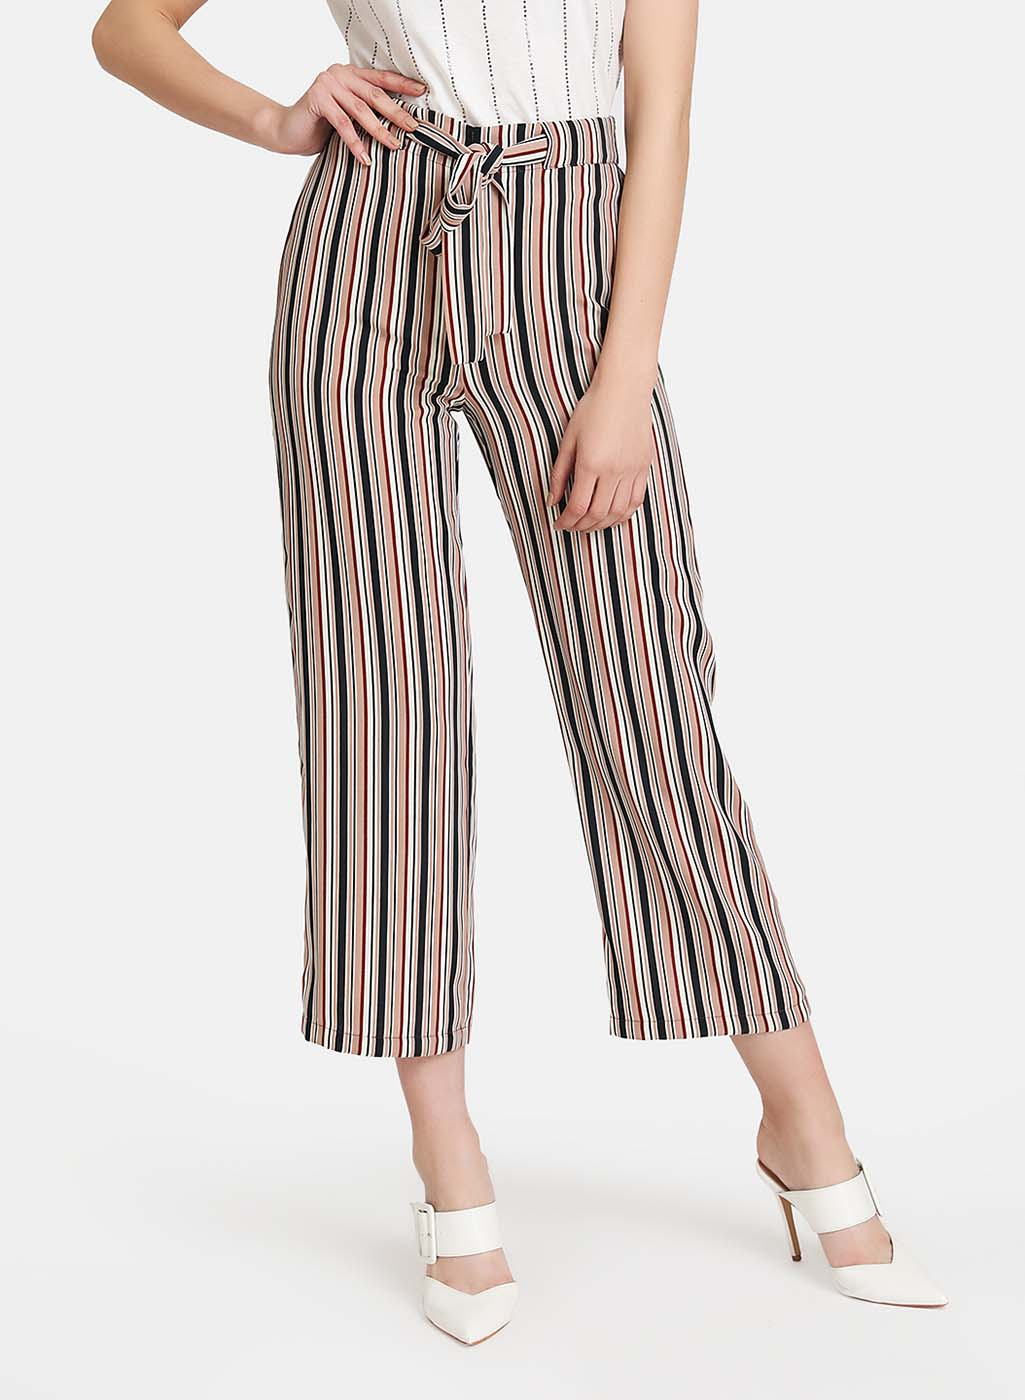 Belted Striped Trouser